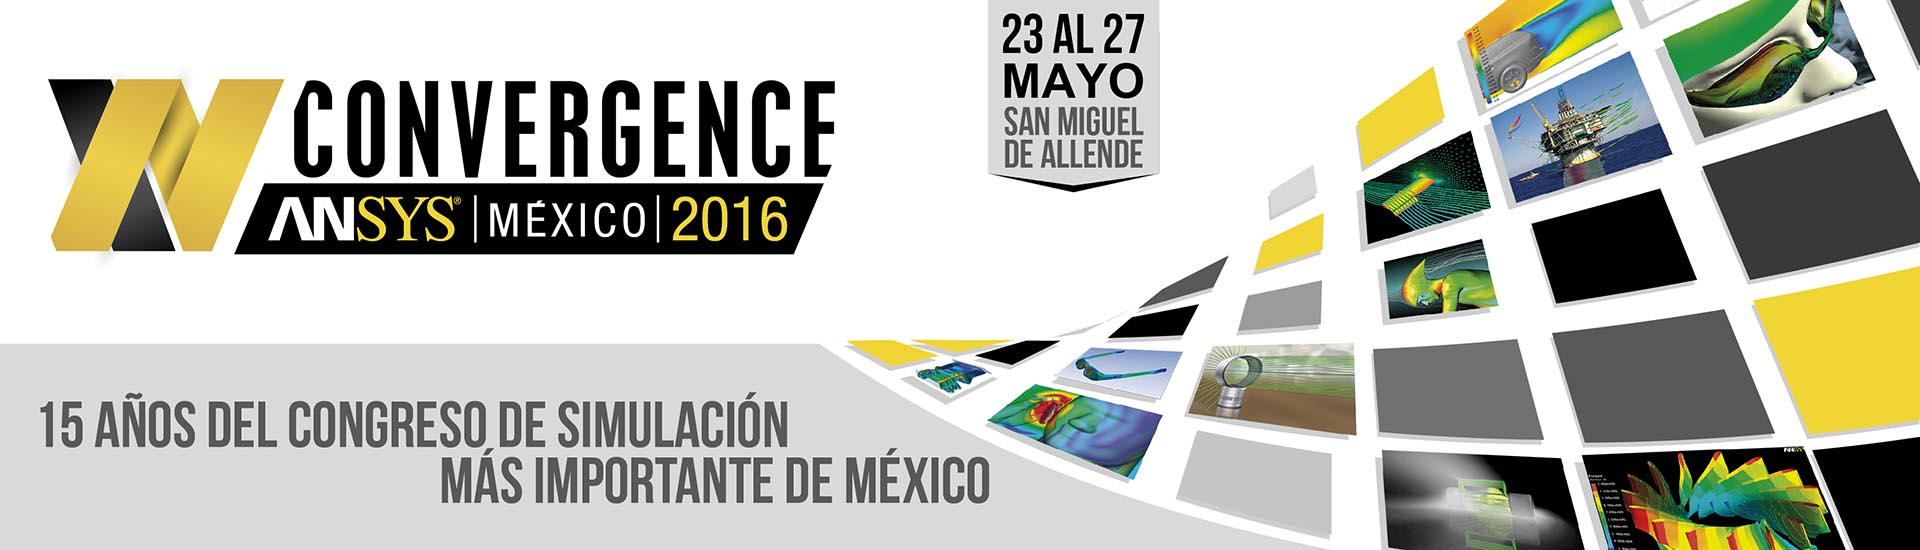 ansys-convergence-2016-mexico